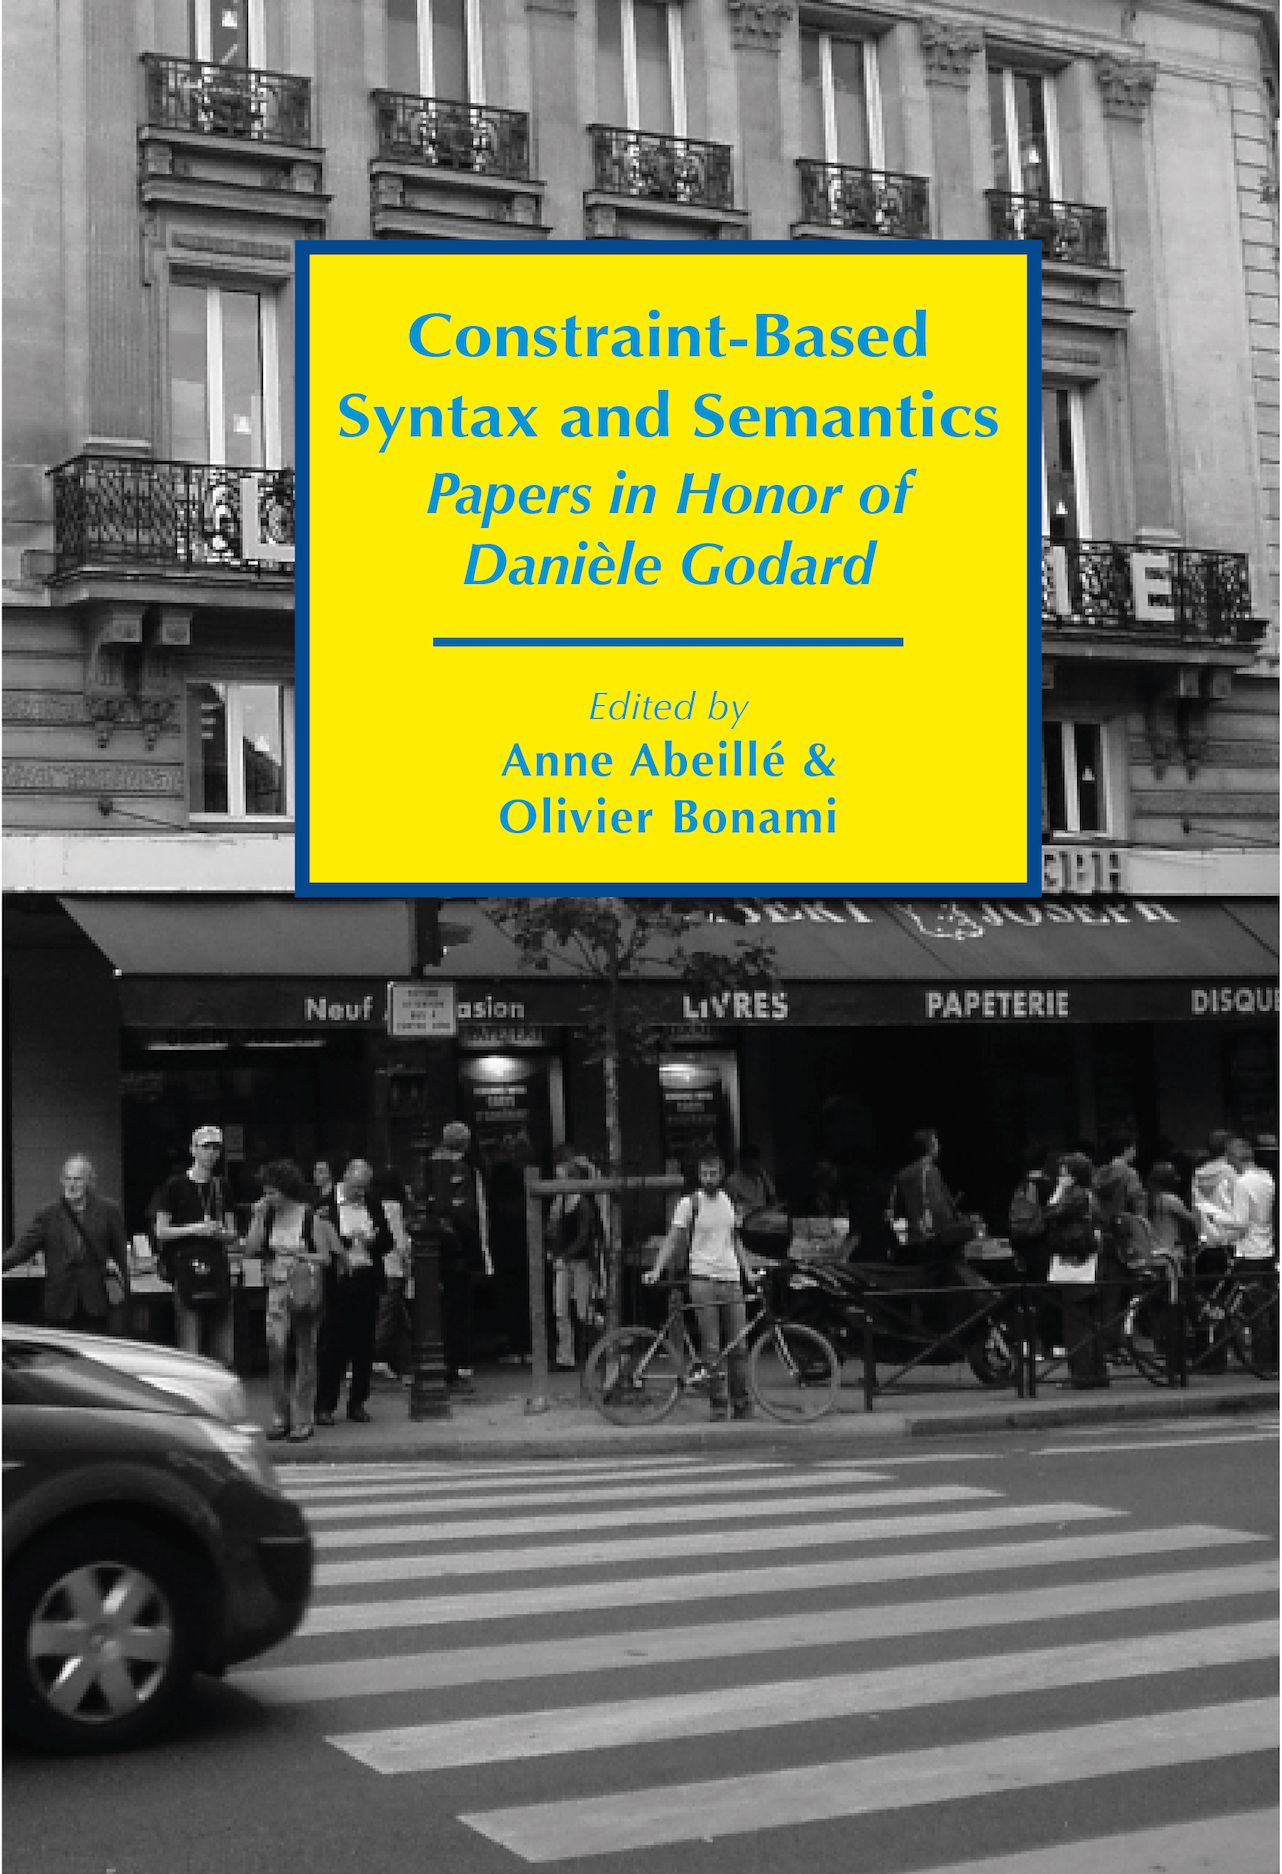 Constraint-Based Syntax and Semantics: Papers in Honor of Danièle Godard